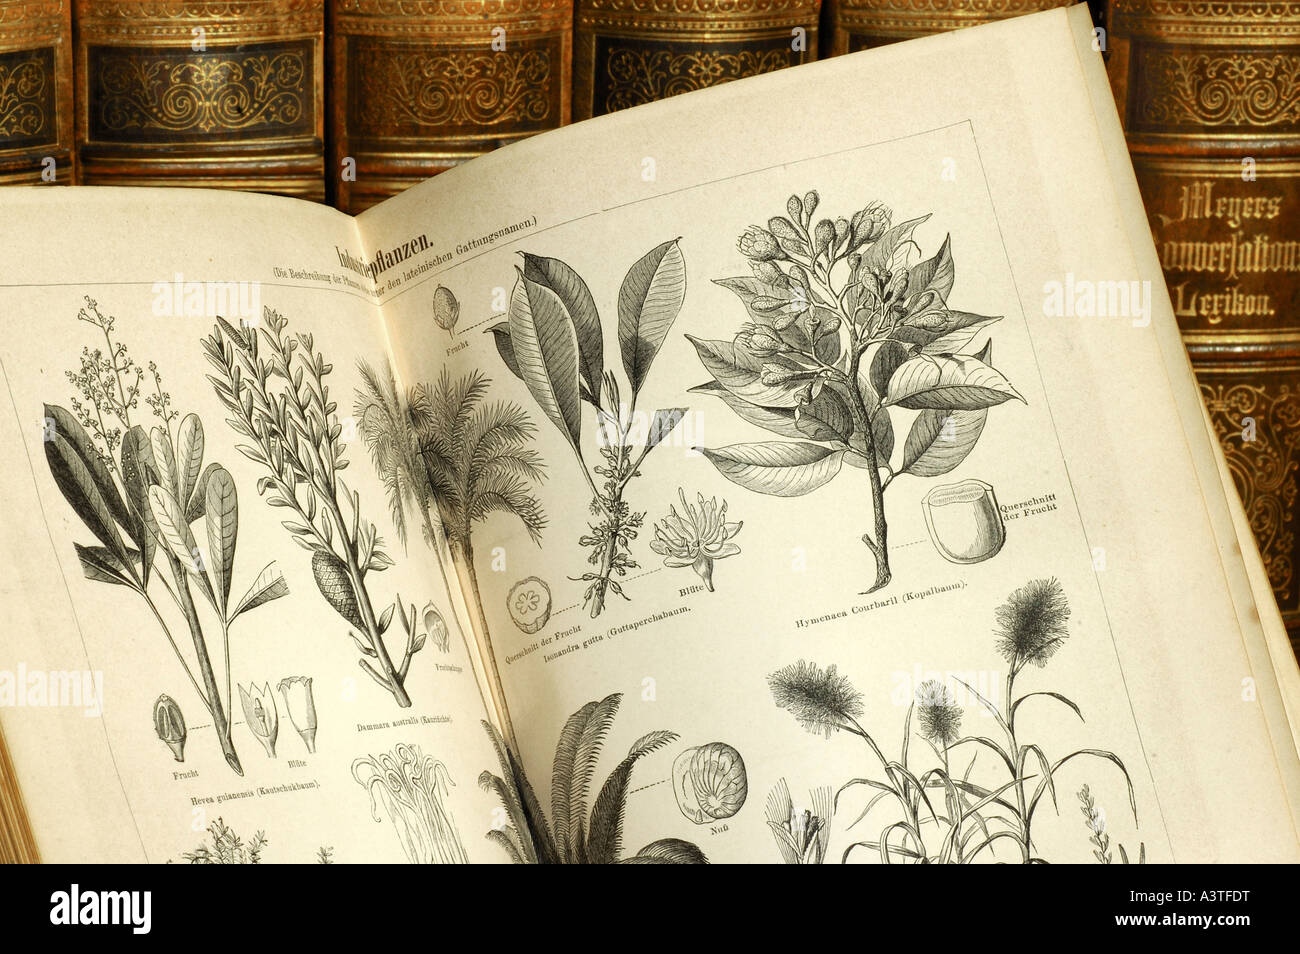 Illustrations de plantes utiles dans un volume d'une ancienne édition de Meyers lexicon Photo Stock